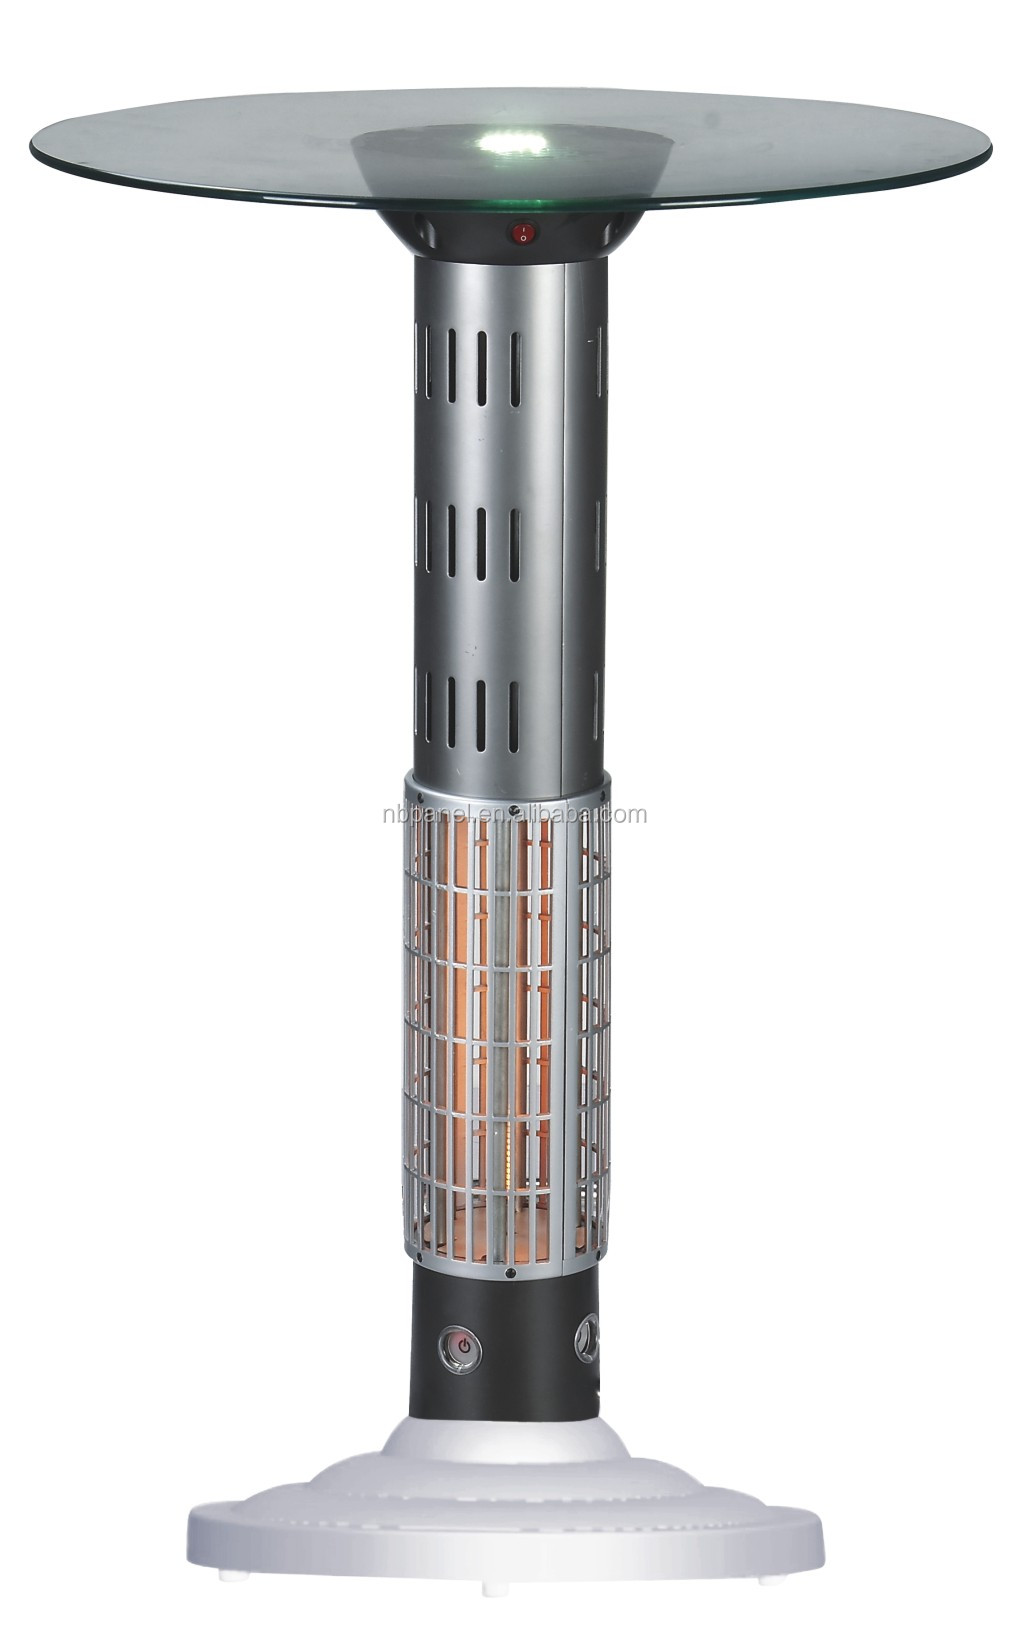 table heater. 1000w electric patio outdoor table heater - buy heater,cixi painuo,outdoor product on alibaba.com b